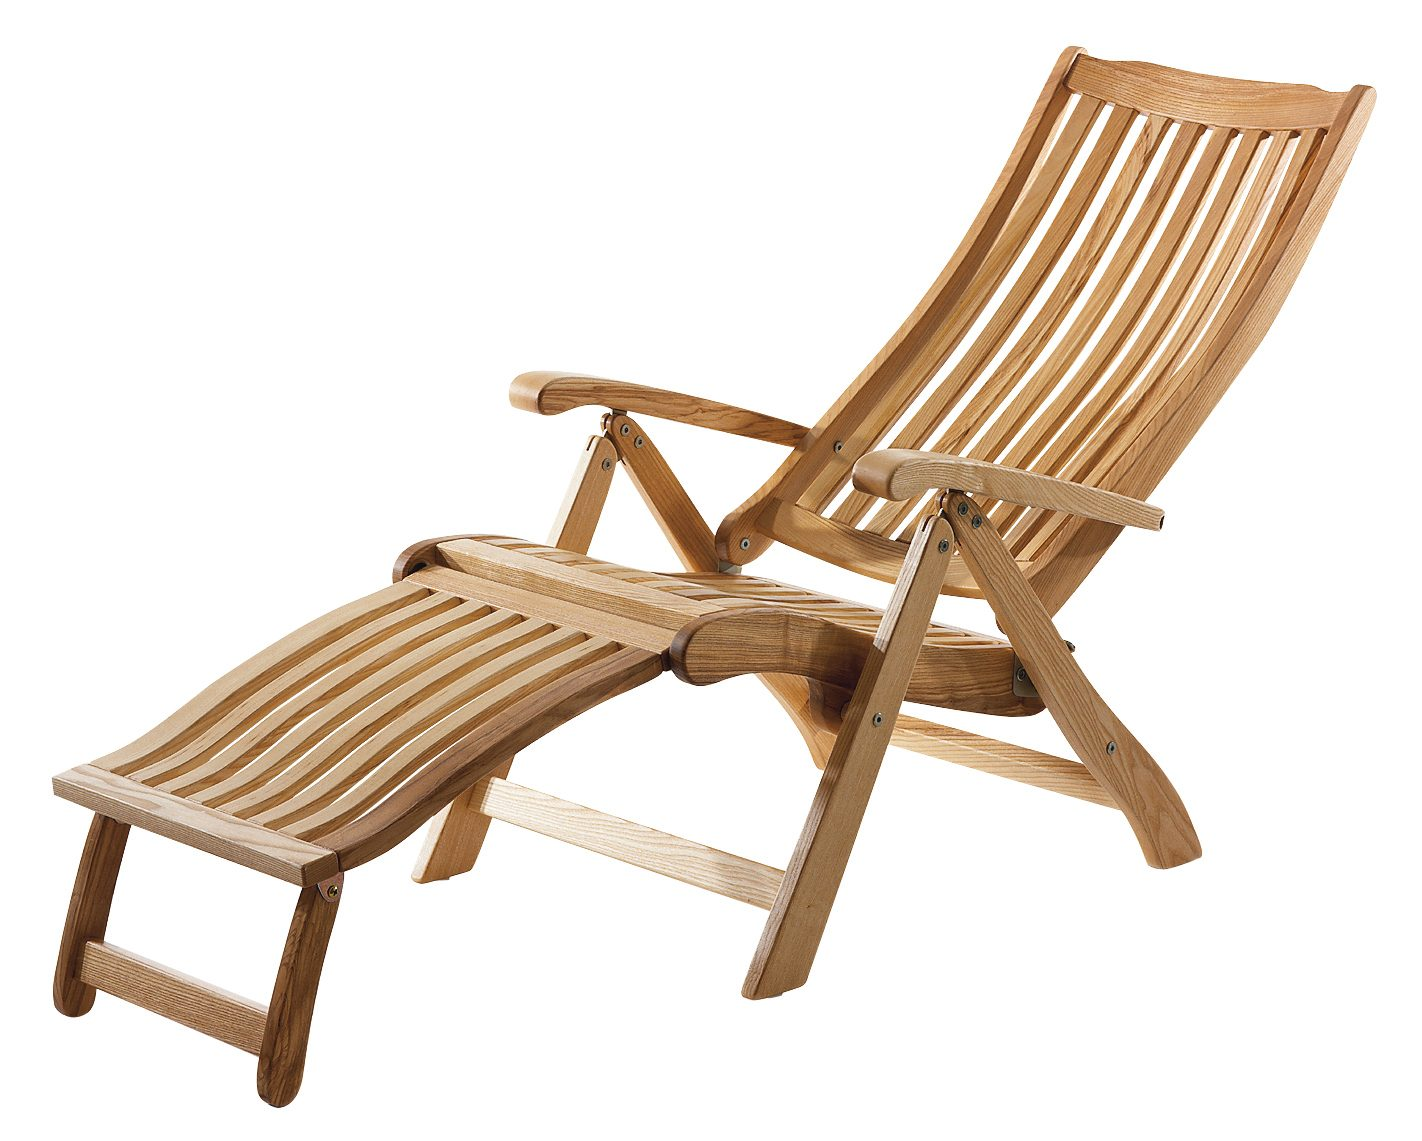 Living Room Furniture Furniture Beach Chair Folding Solid Wood Recliner Canvas Chair Lunch Break Chair Leisure Outdoor Portable Chair Beneficial To The Sperm